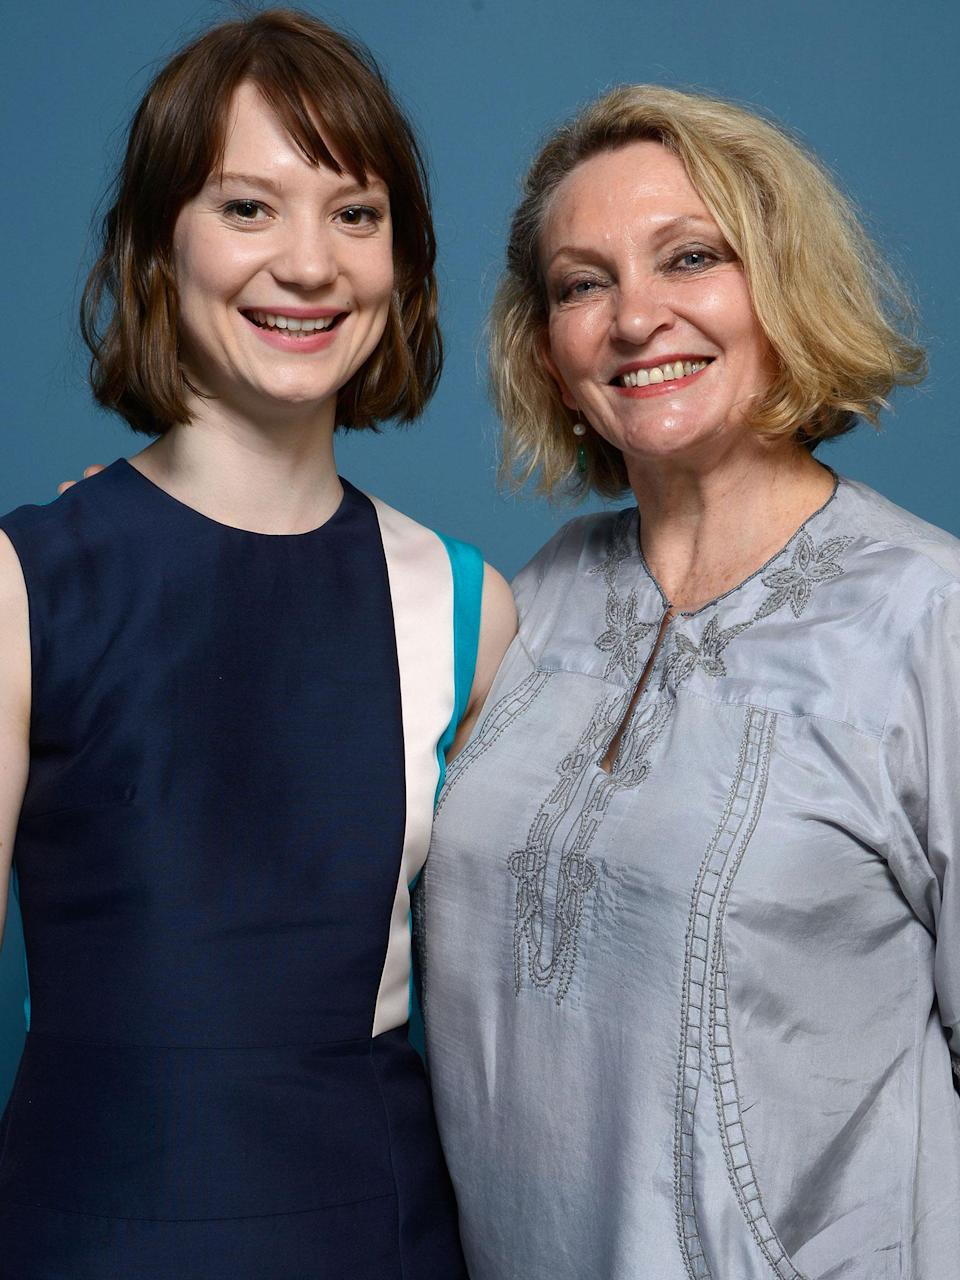 Mia Wasikowska and the real Robyn Davidson (Larry Busacca/Getty Images)